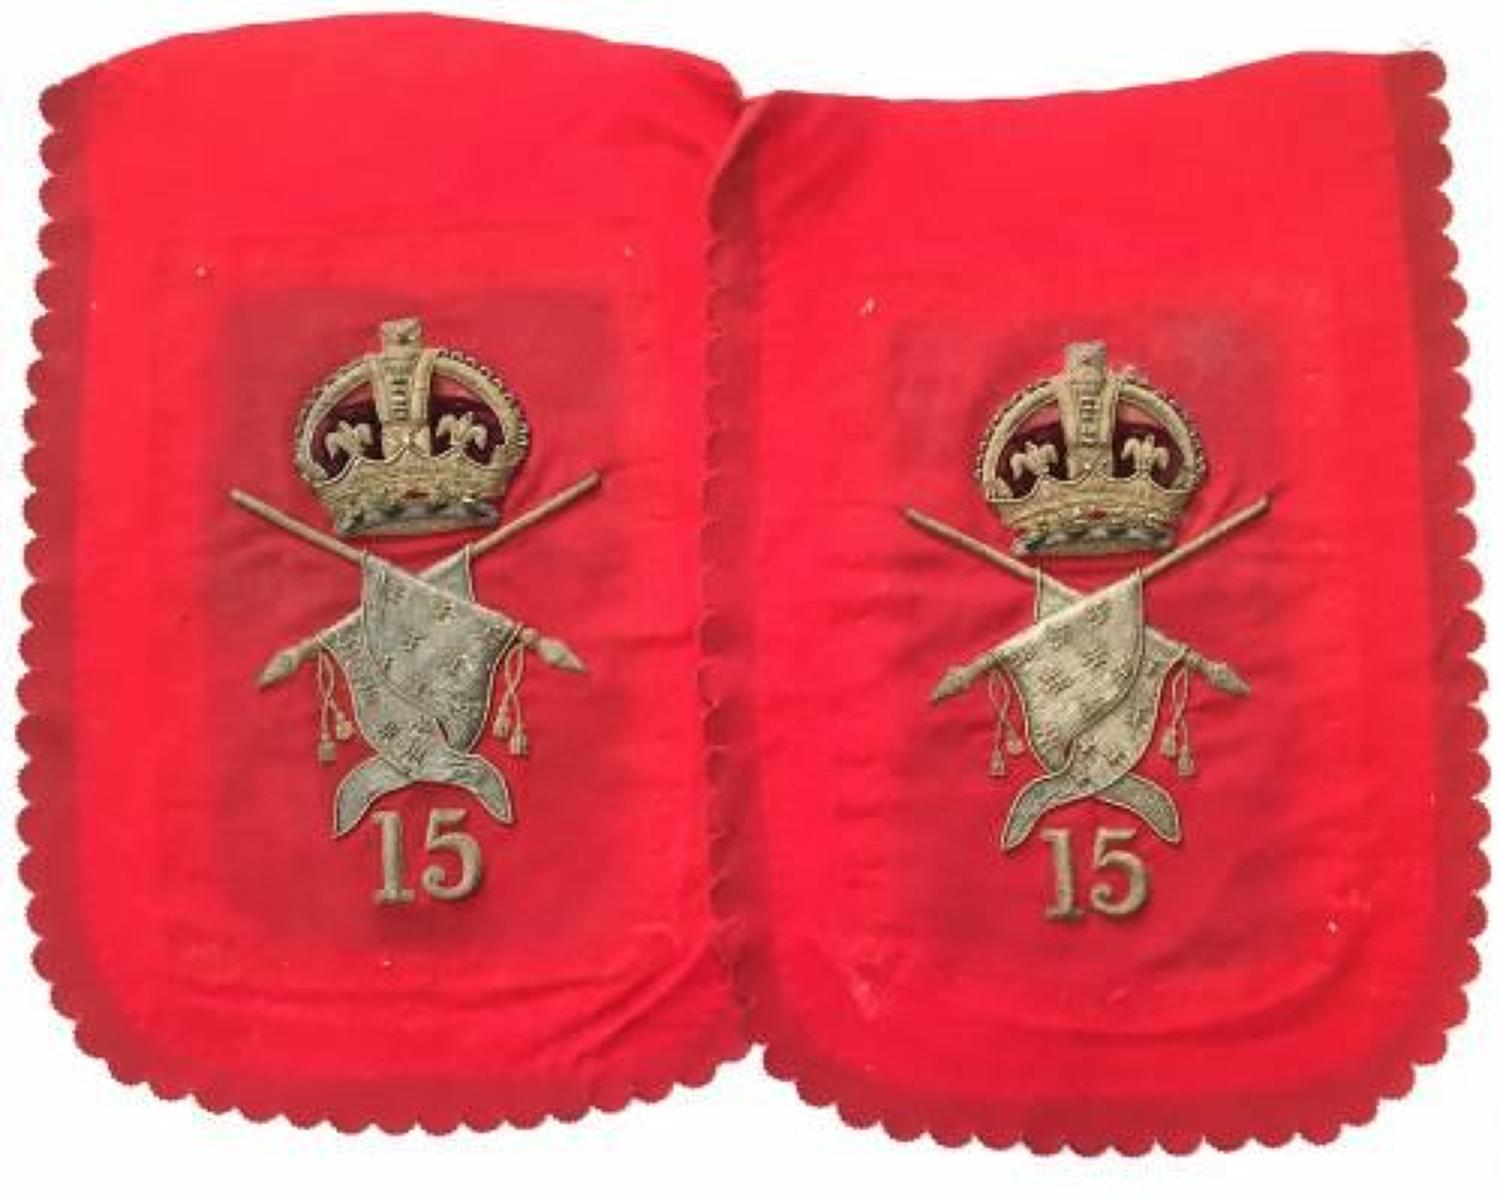 15th King's Hussars shabraque panels,